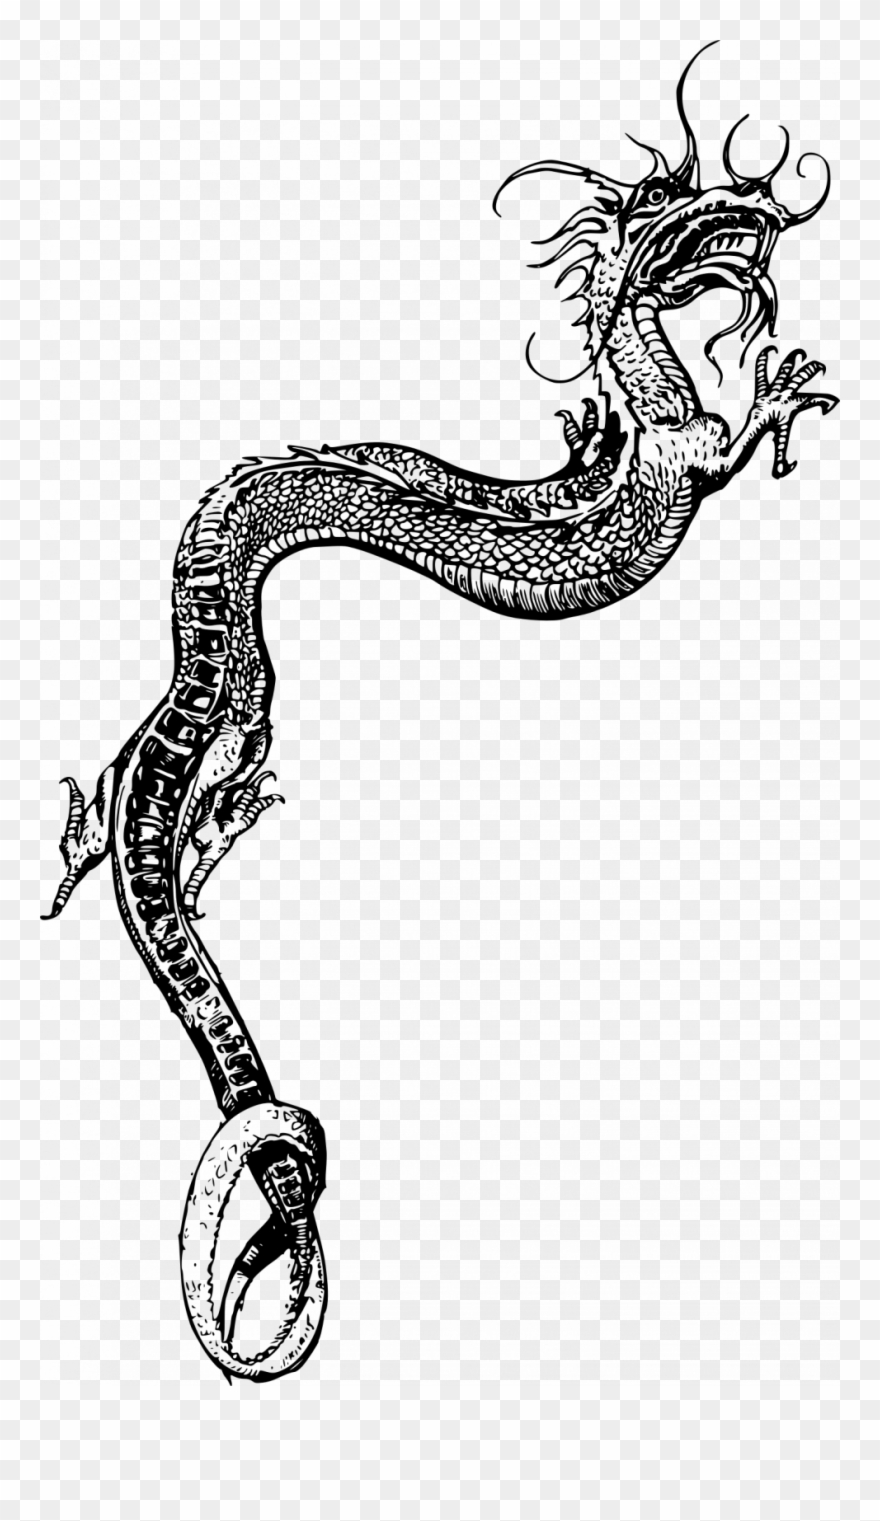 Chinese Dragon Outline Free Download Best Chinese Dragon.